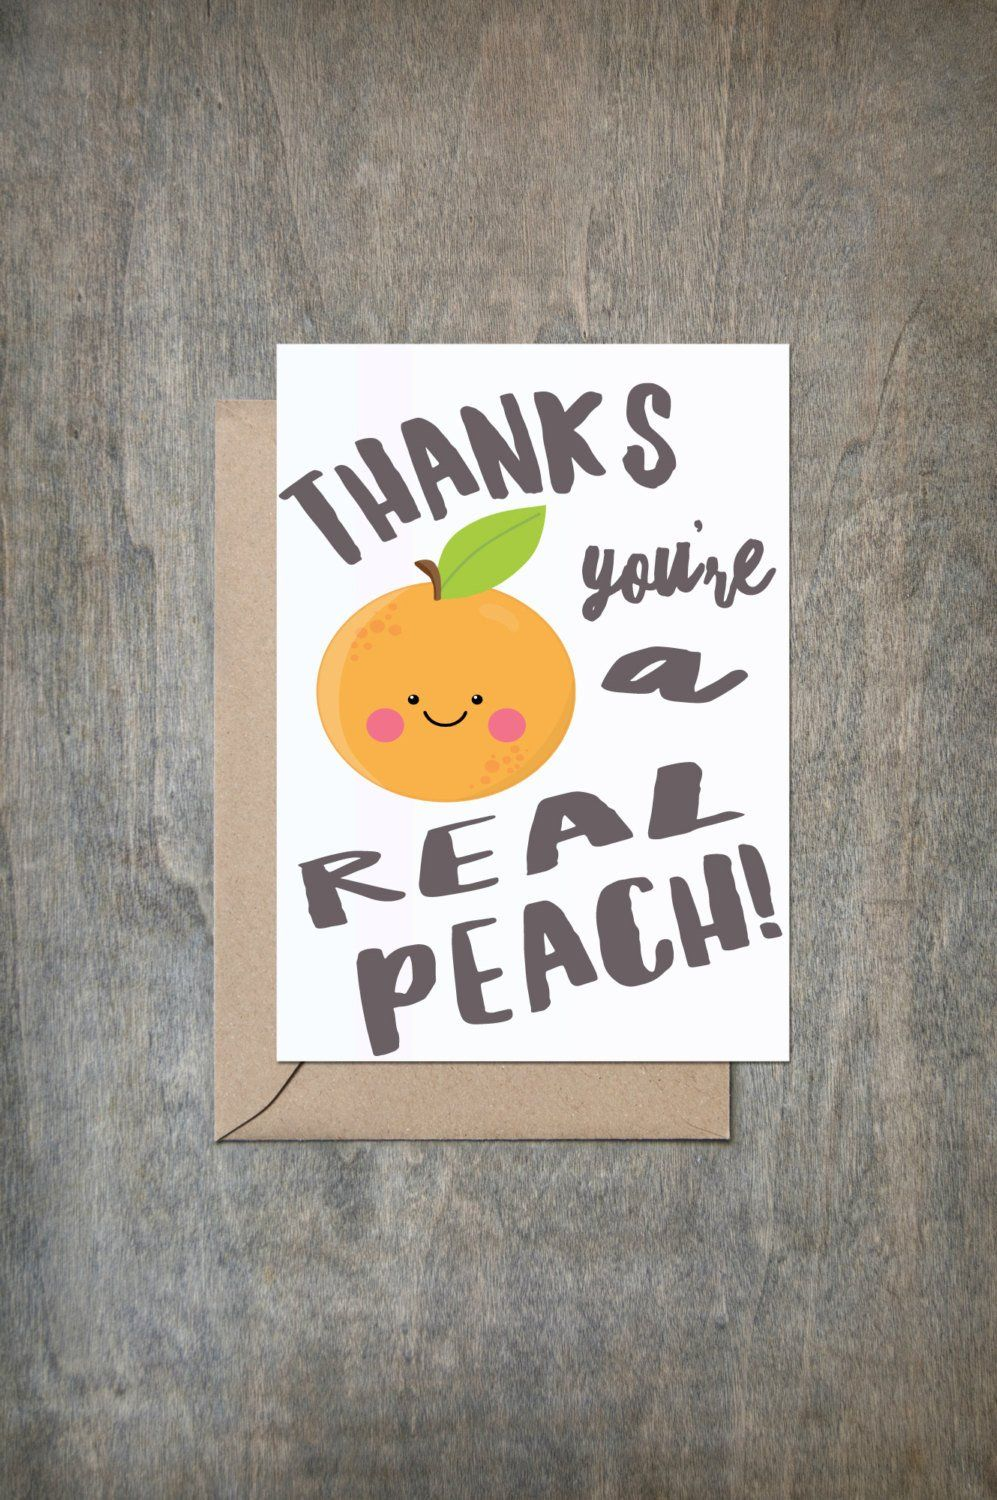 Thanks You're a Real Peach. Funny Thank You card. Funny Friend Card. Thank You card. Thank You Cards. Thank You Gift. Mature.